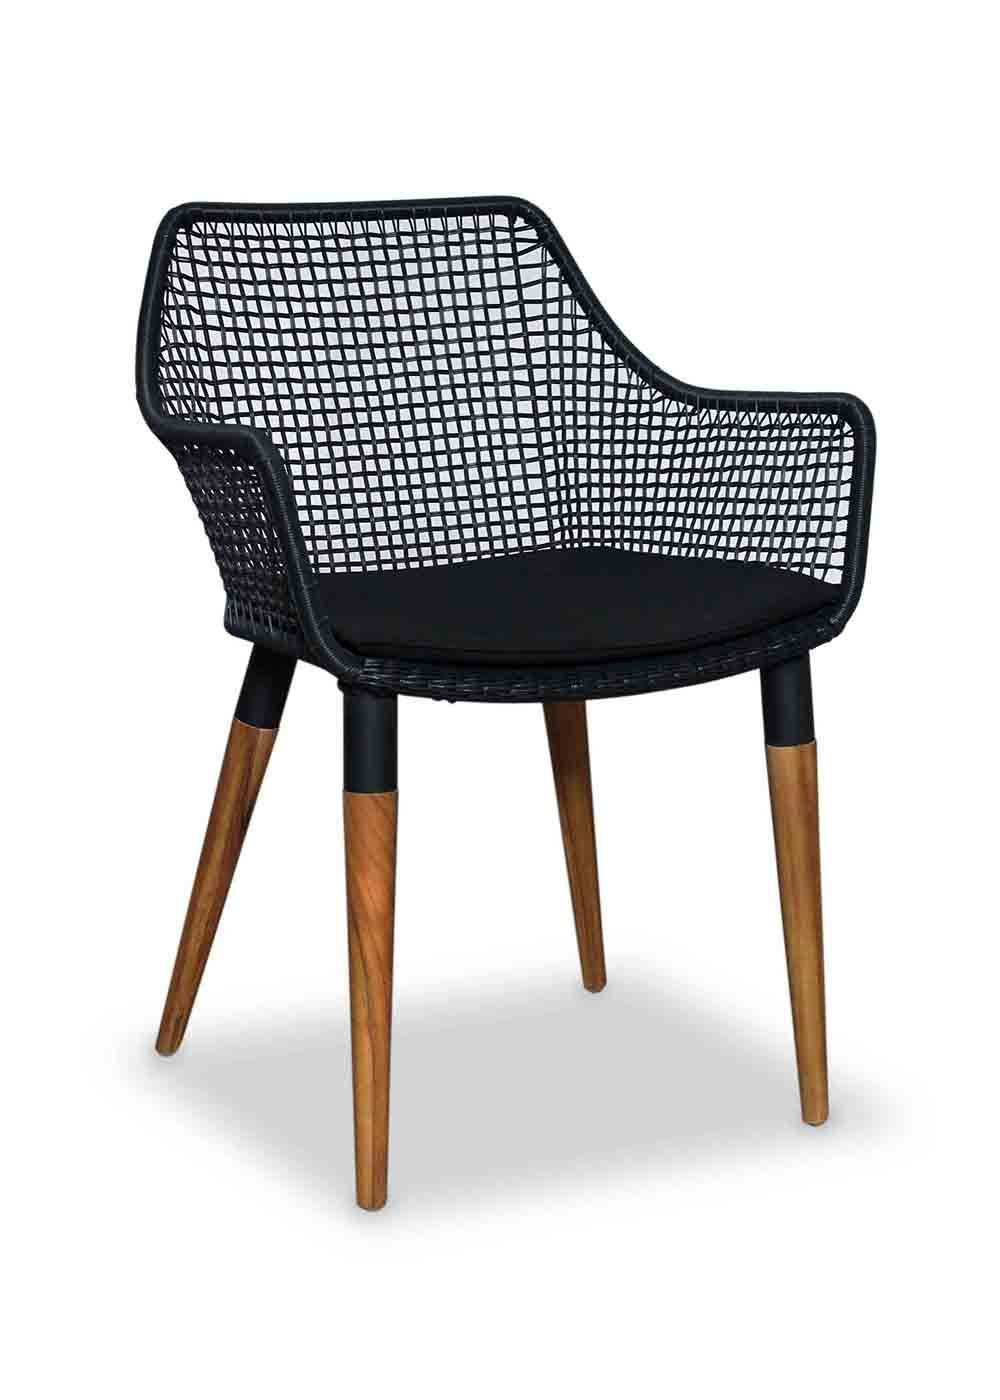 The Emerson Graph Arm Chair Has A Steel Body With Solid Teak Wood Legs And  Faux